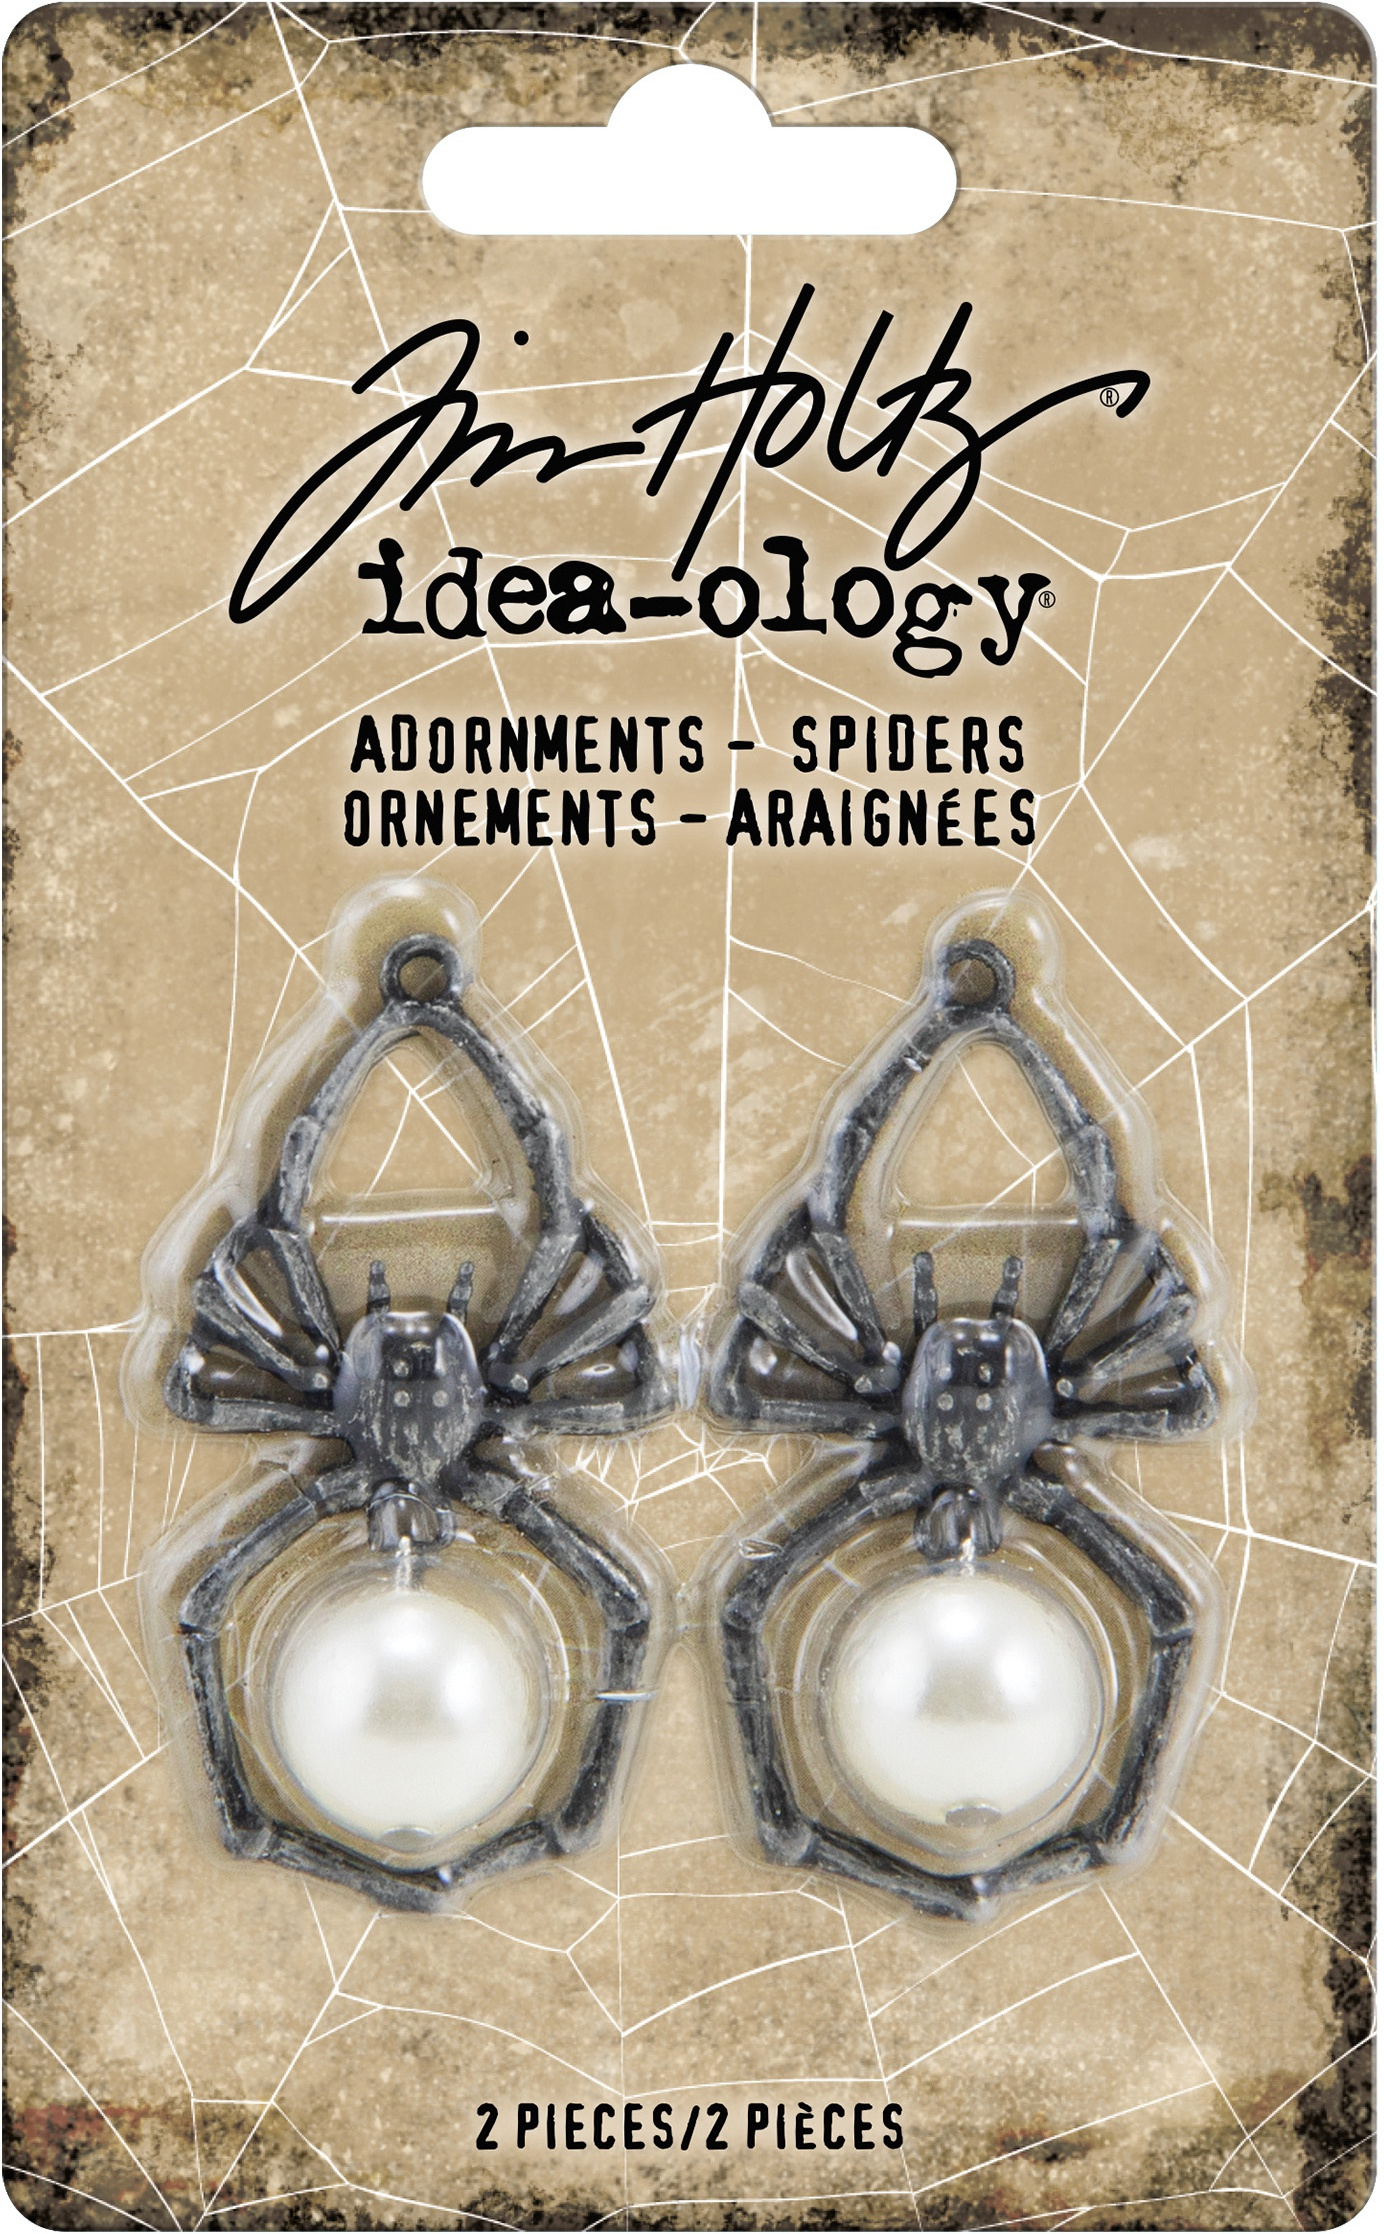 Idea-ology Adornments Spiders